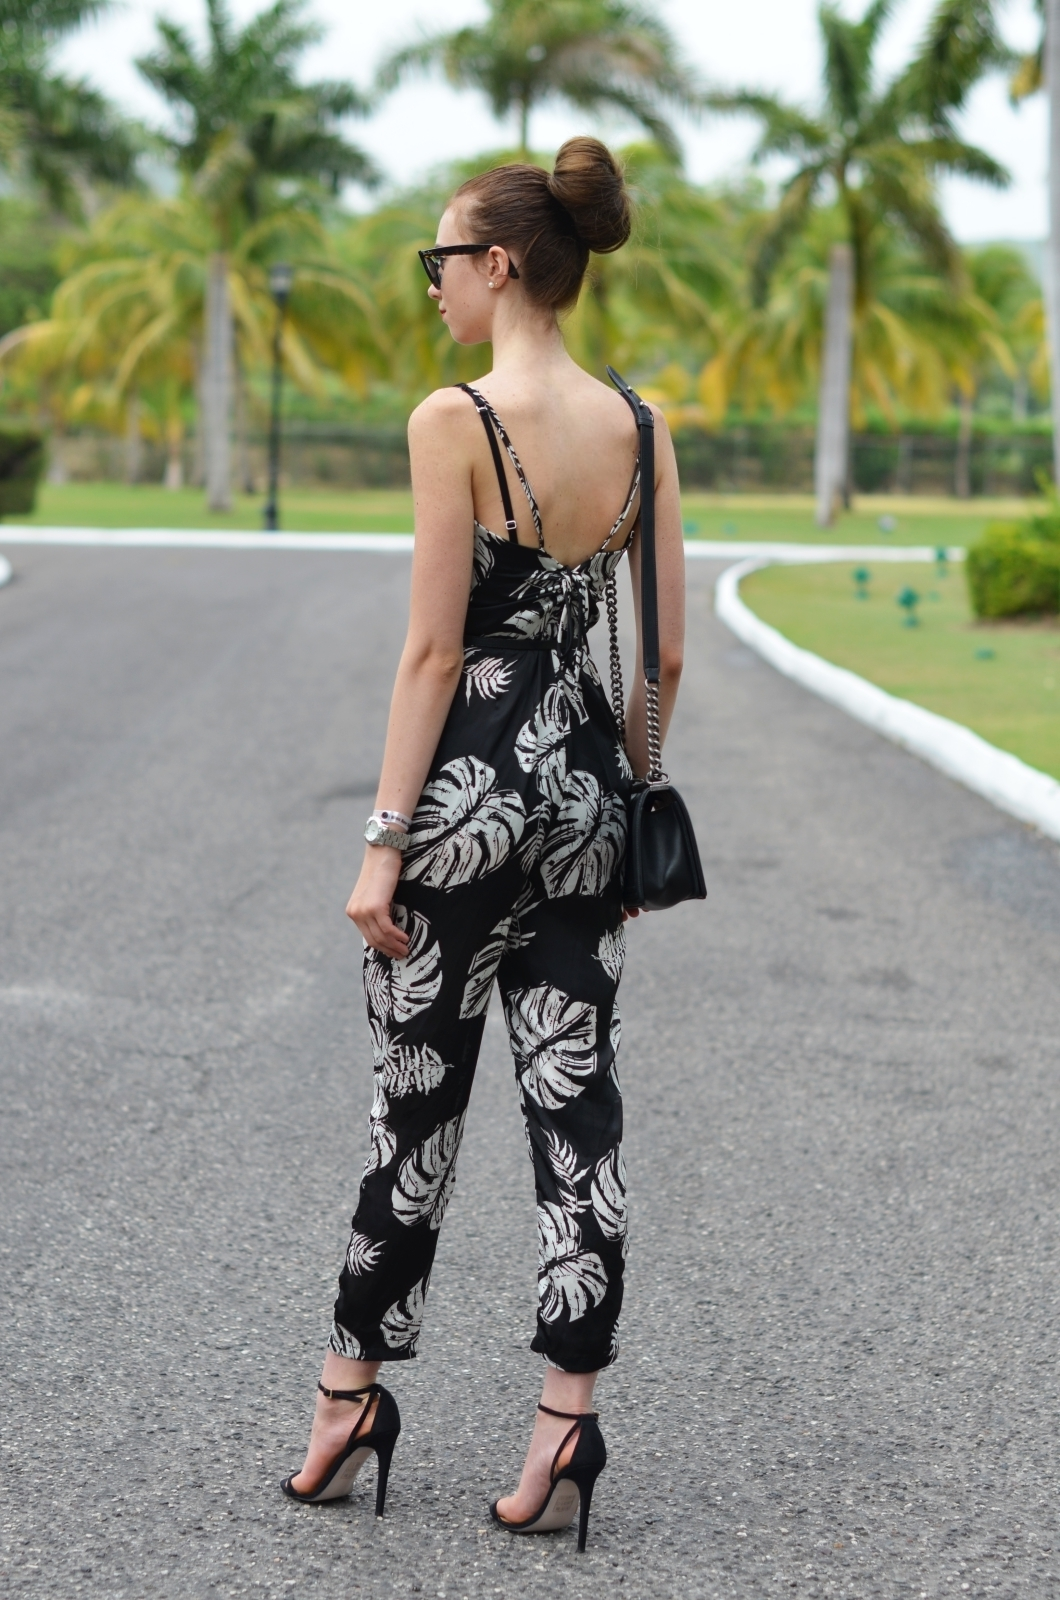 db0874532bd Women s Black and White Print Jumpsuit